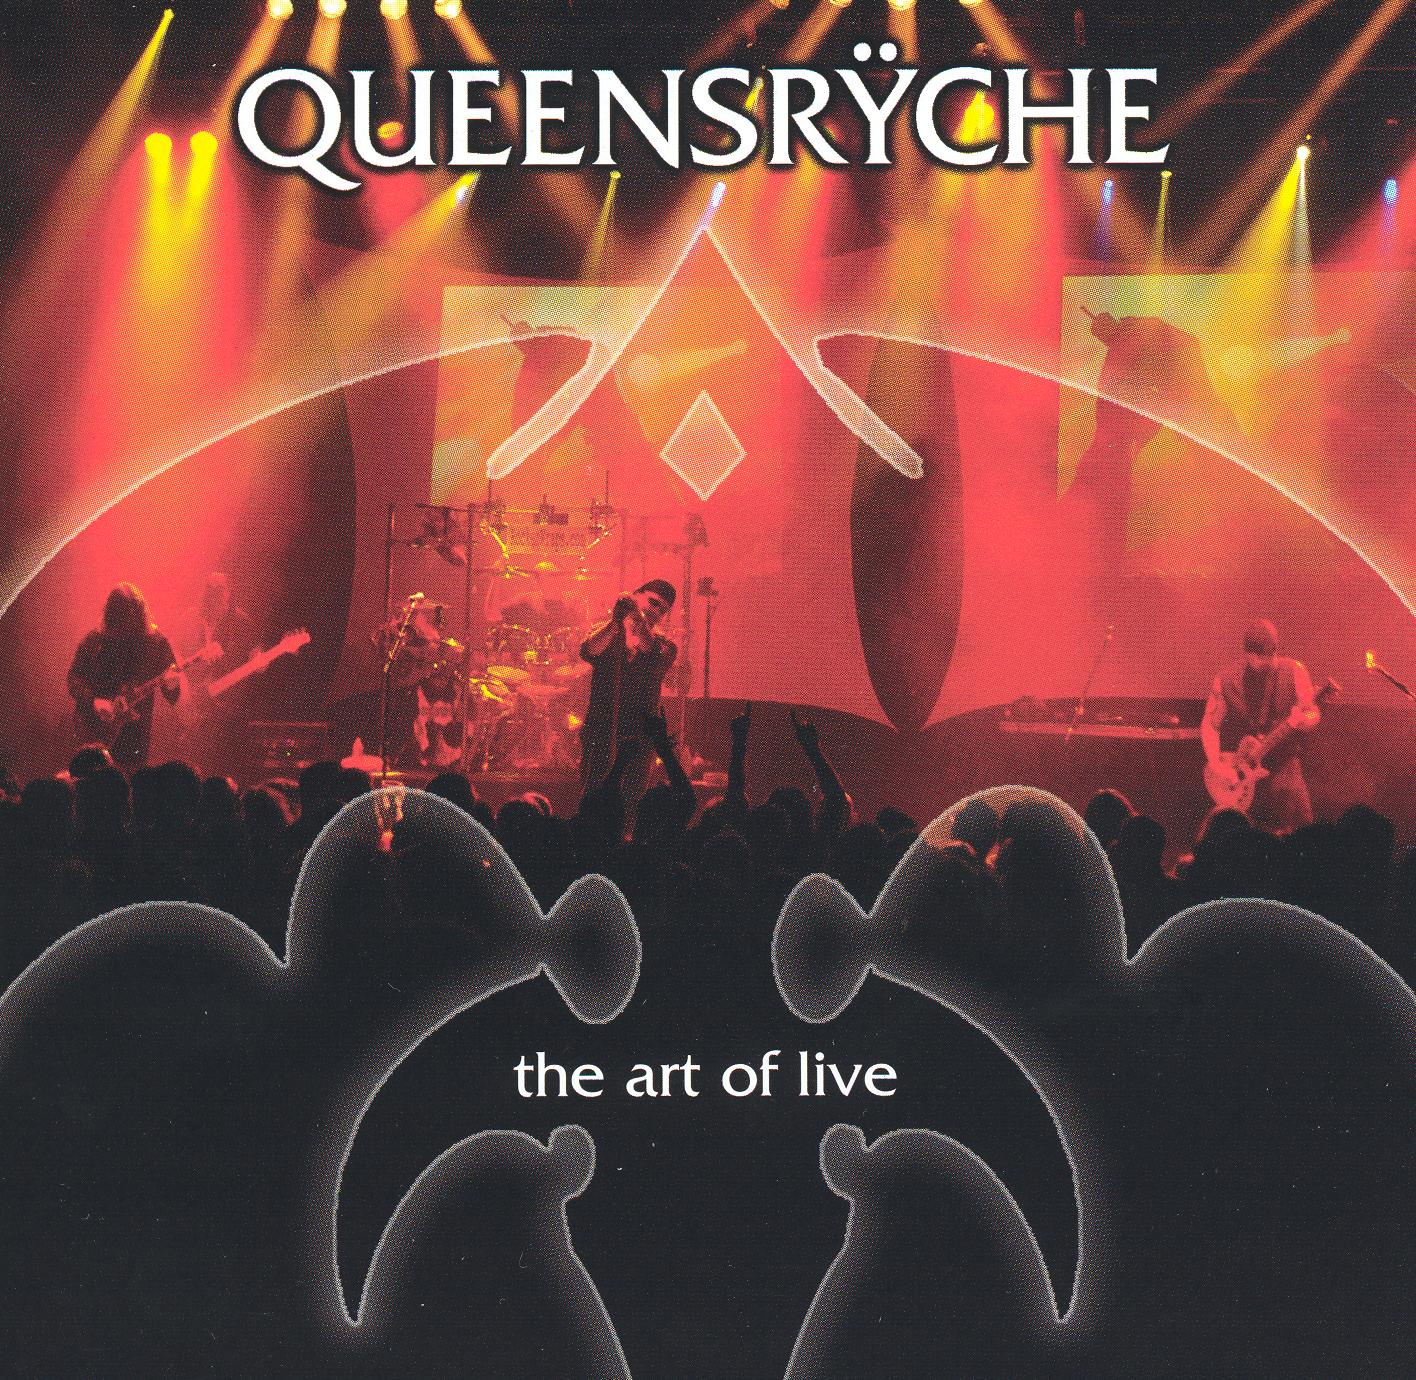 Queensryche: The Art of Live